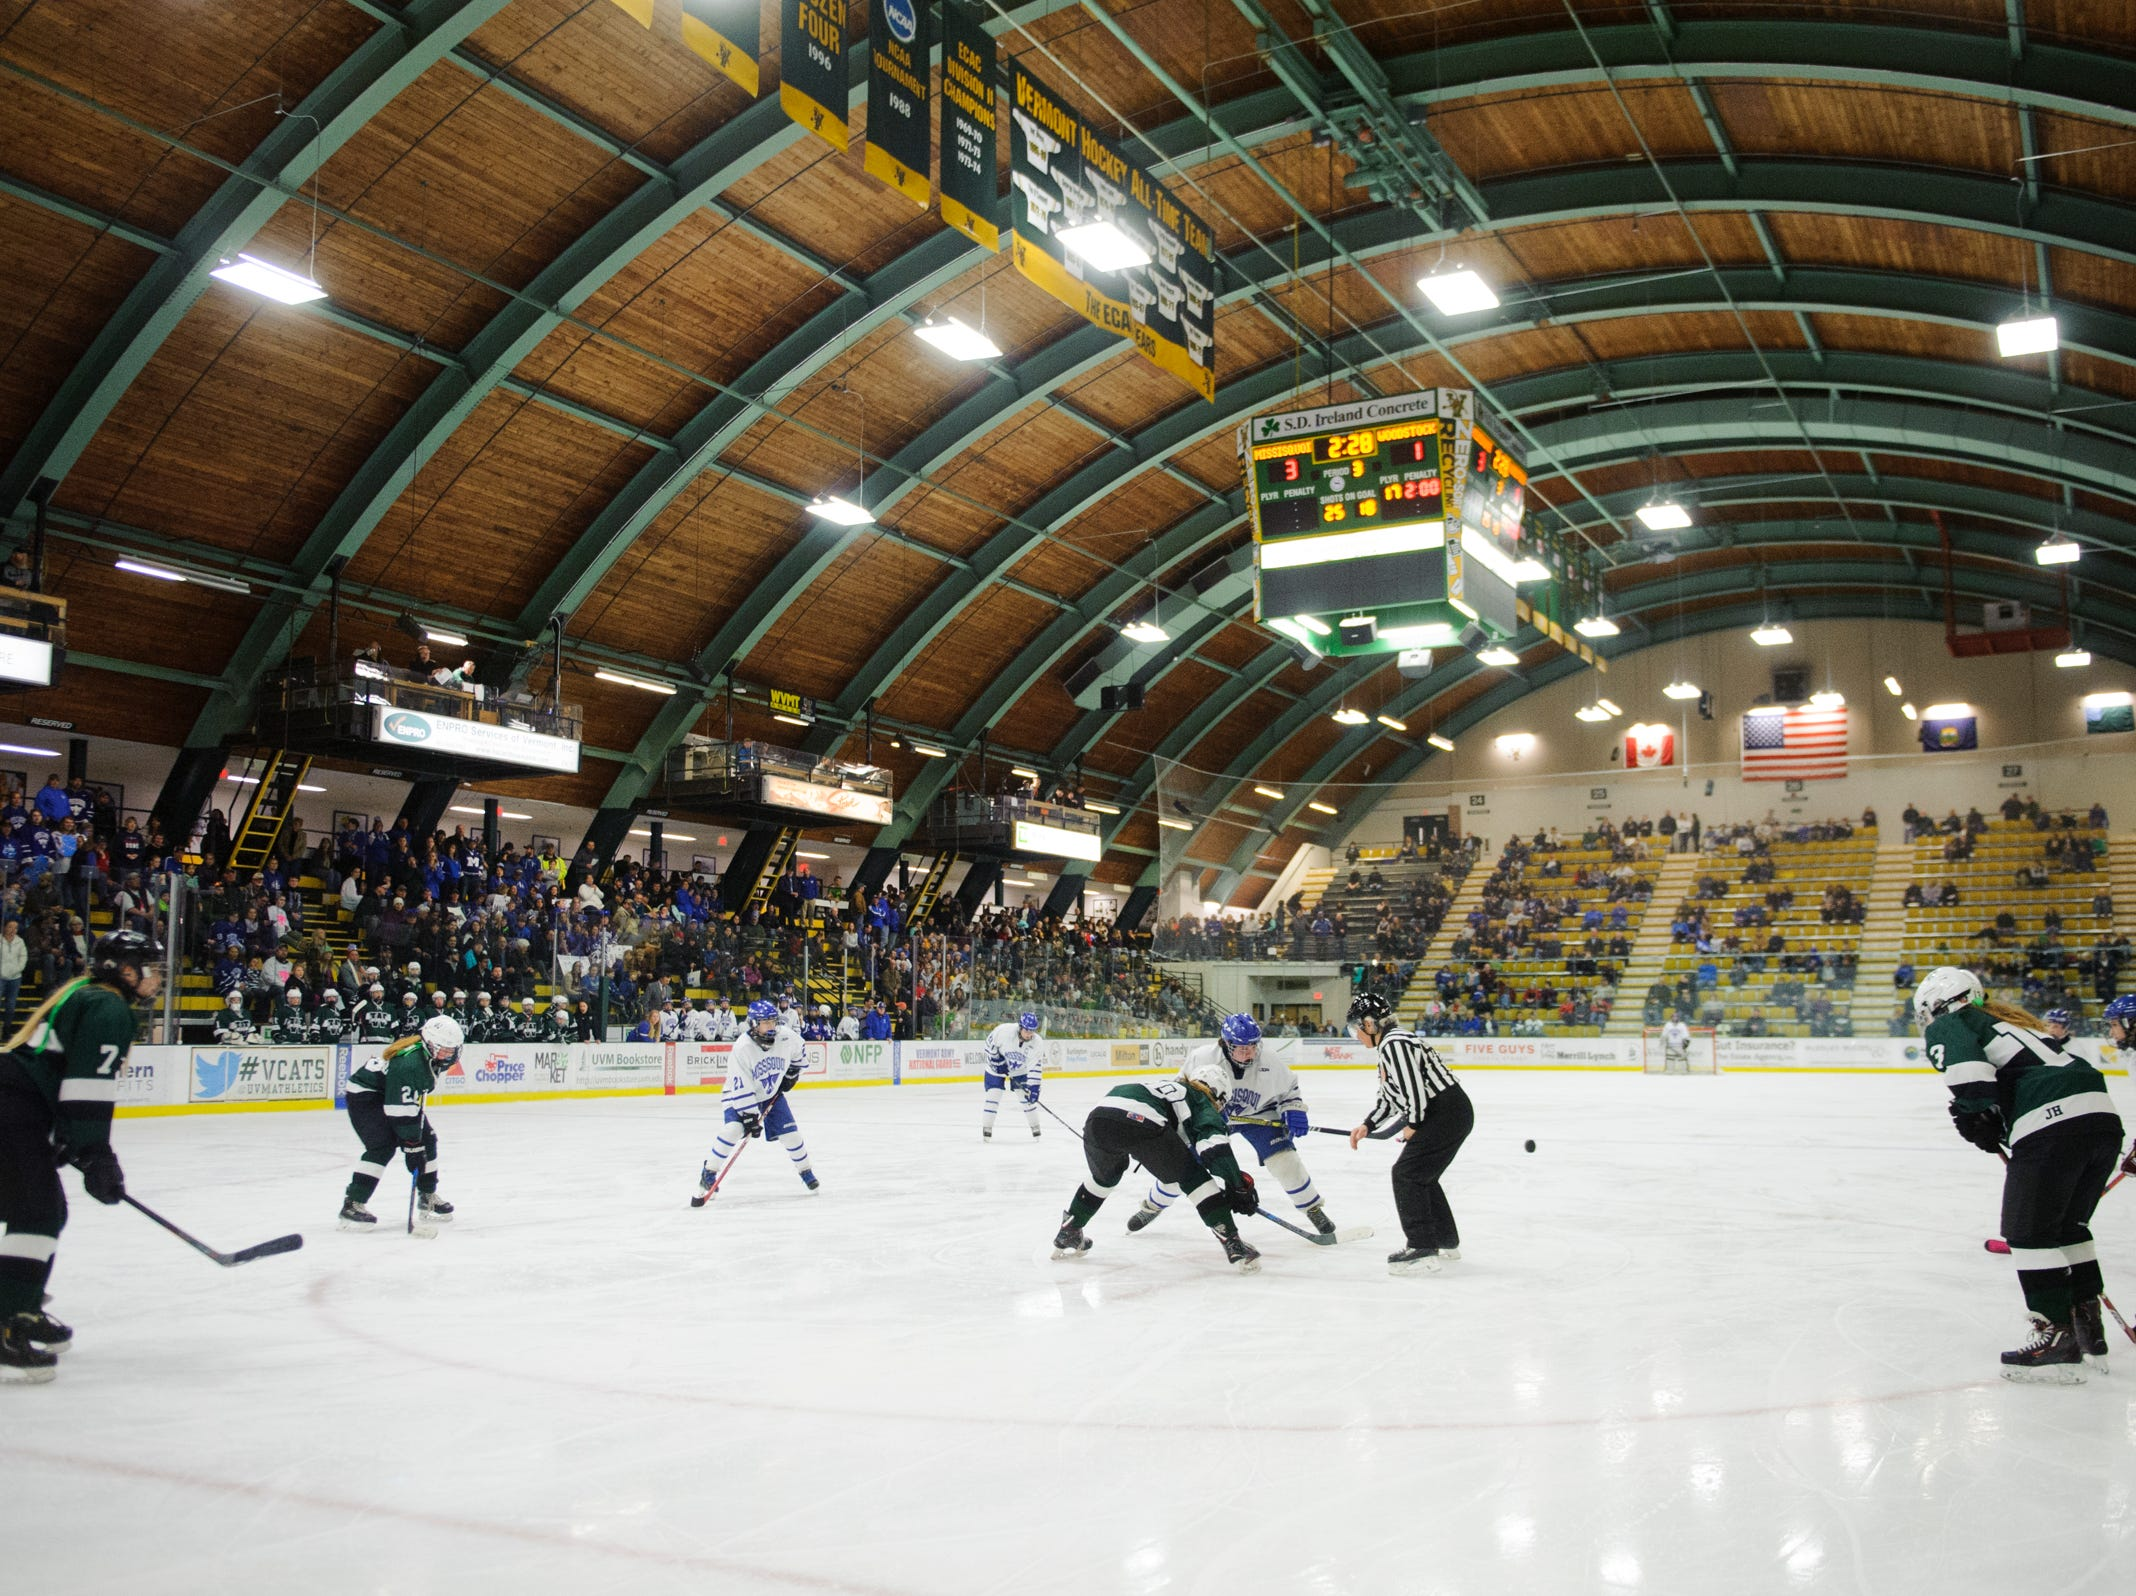 Missisquoi and Woodstock face off during the DII girls hockey championship game between the Woodstock Wasps and the Missisquoi Thunderbirds at Gutterson Field House on Thursday night March 14, 2019 in Burlington, Vermont.